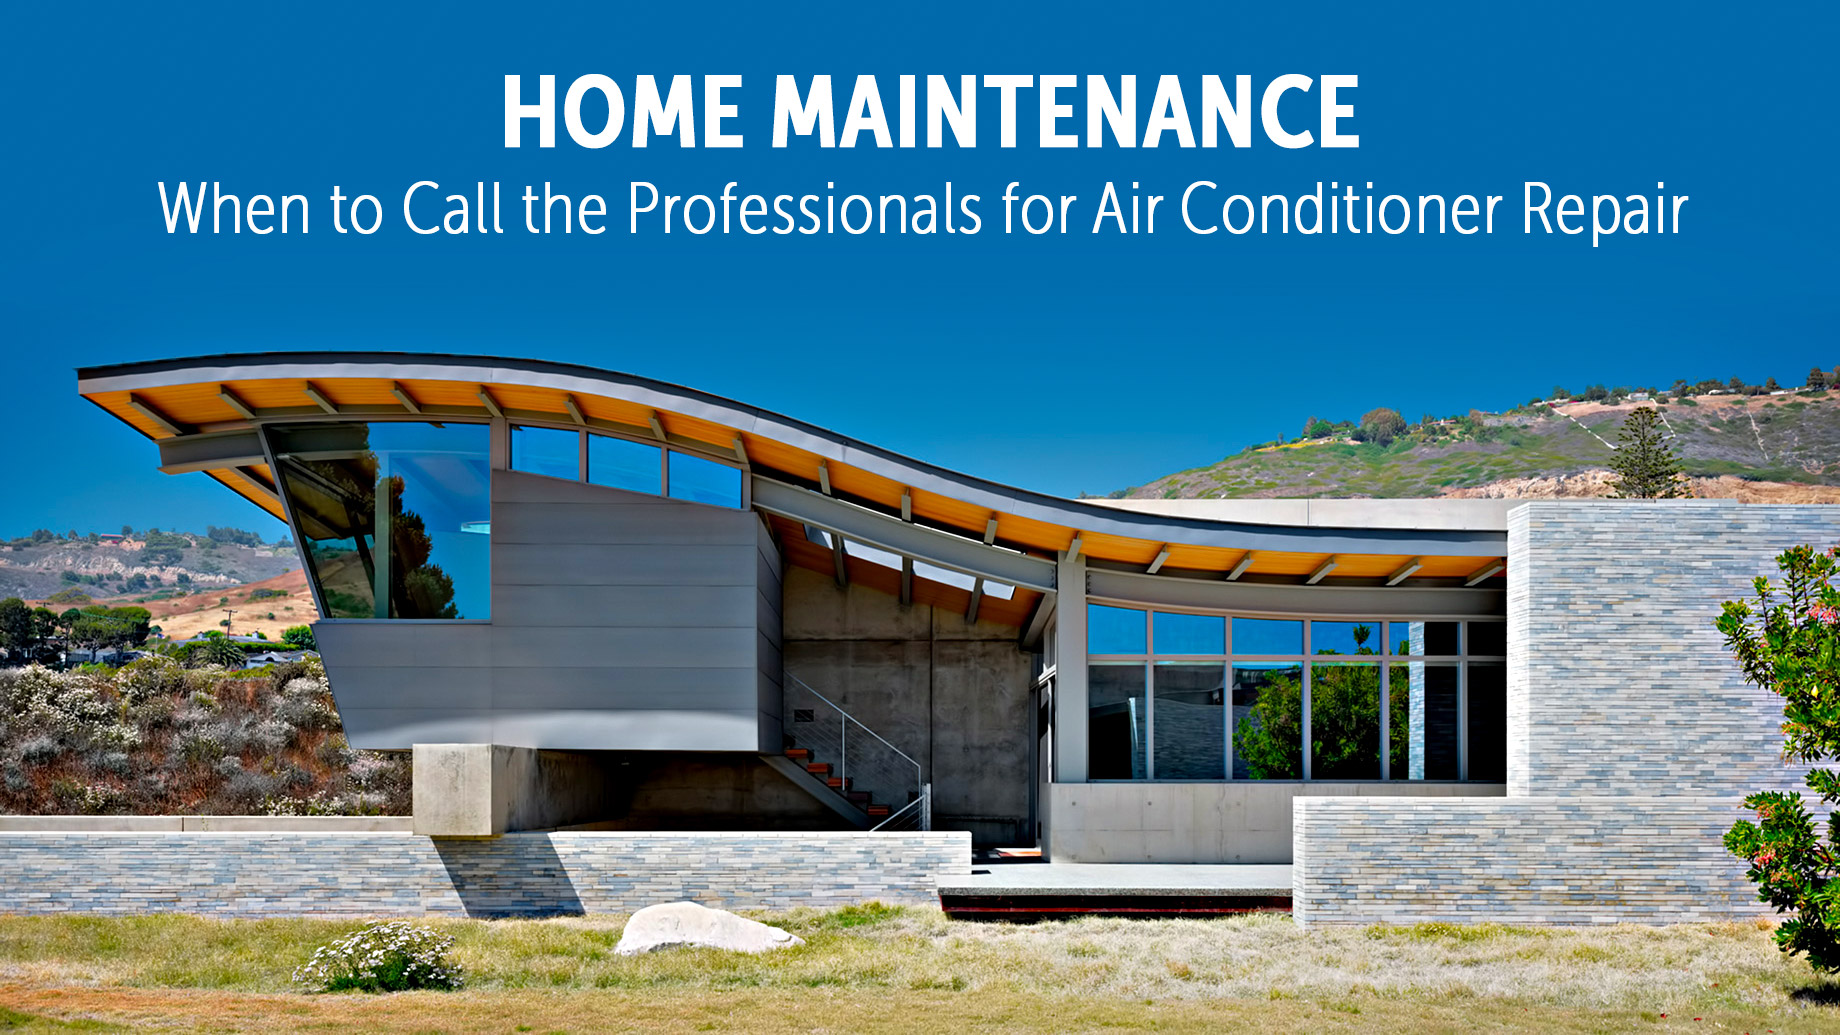 Home Maintenance - When to Call the Professionals for Air Conditioner Repair